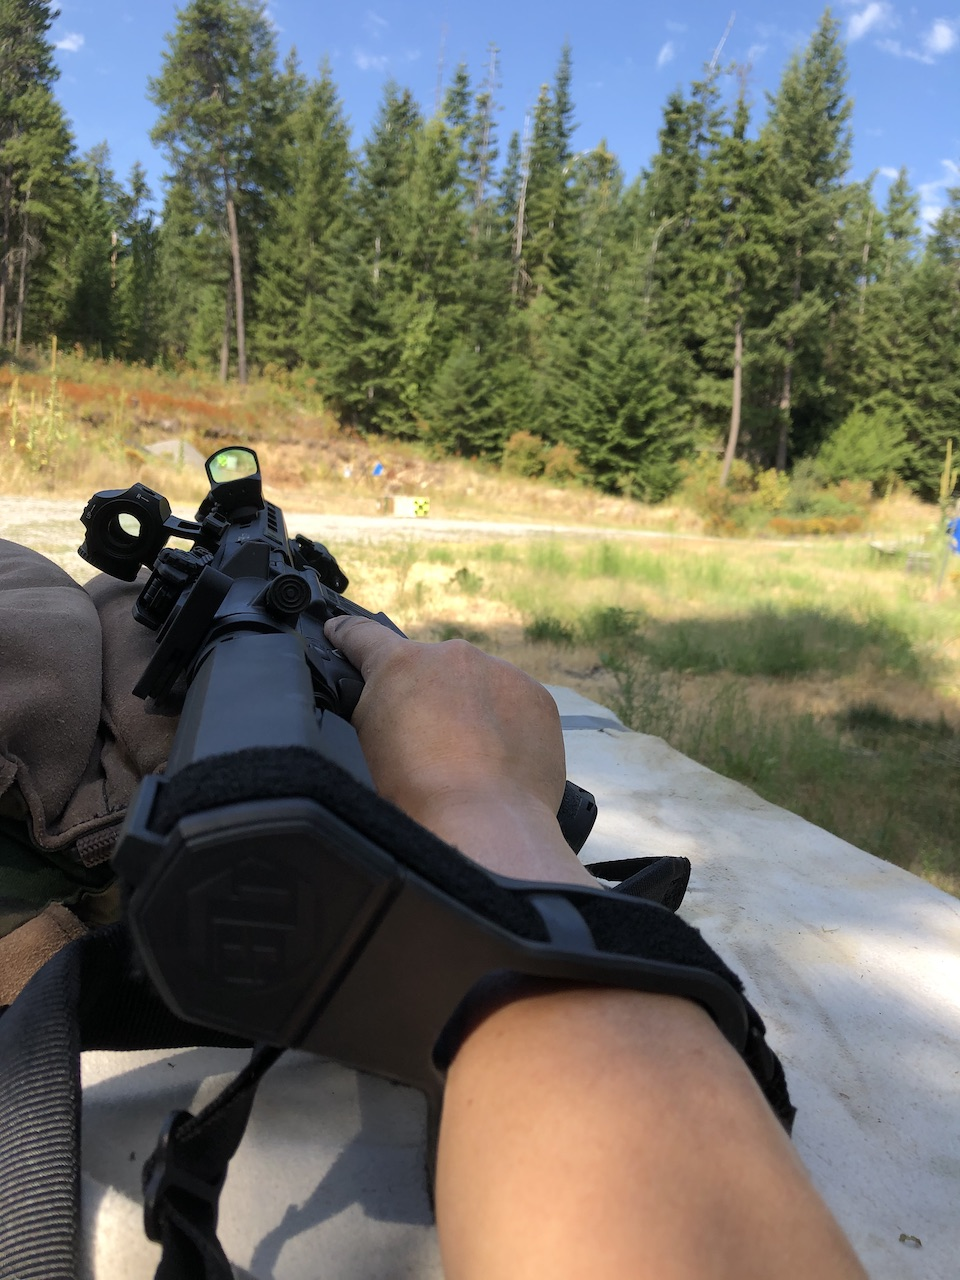 Shooting one handed with SBTA3 pistol brace through CTS1400 supported by sand bag